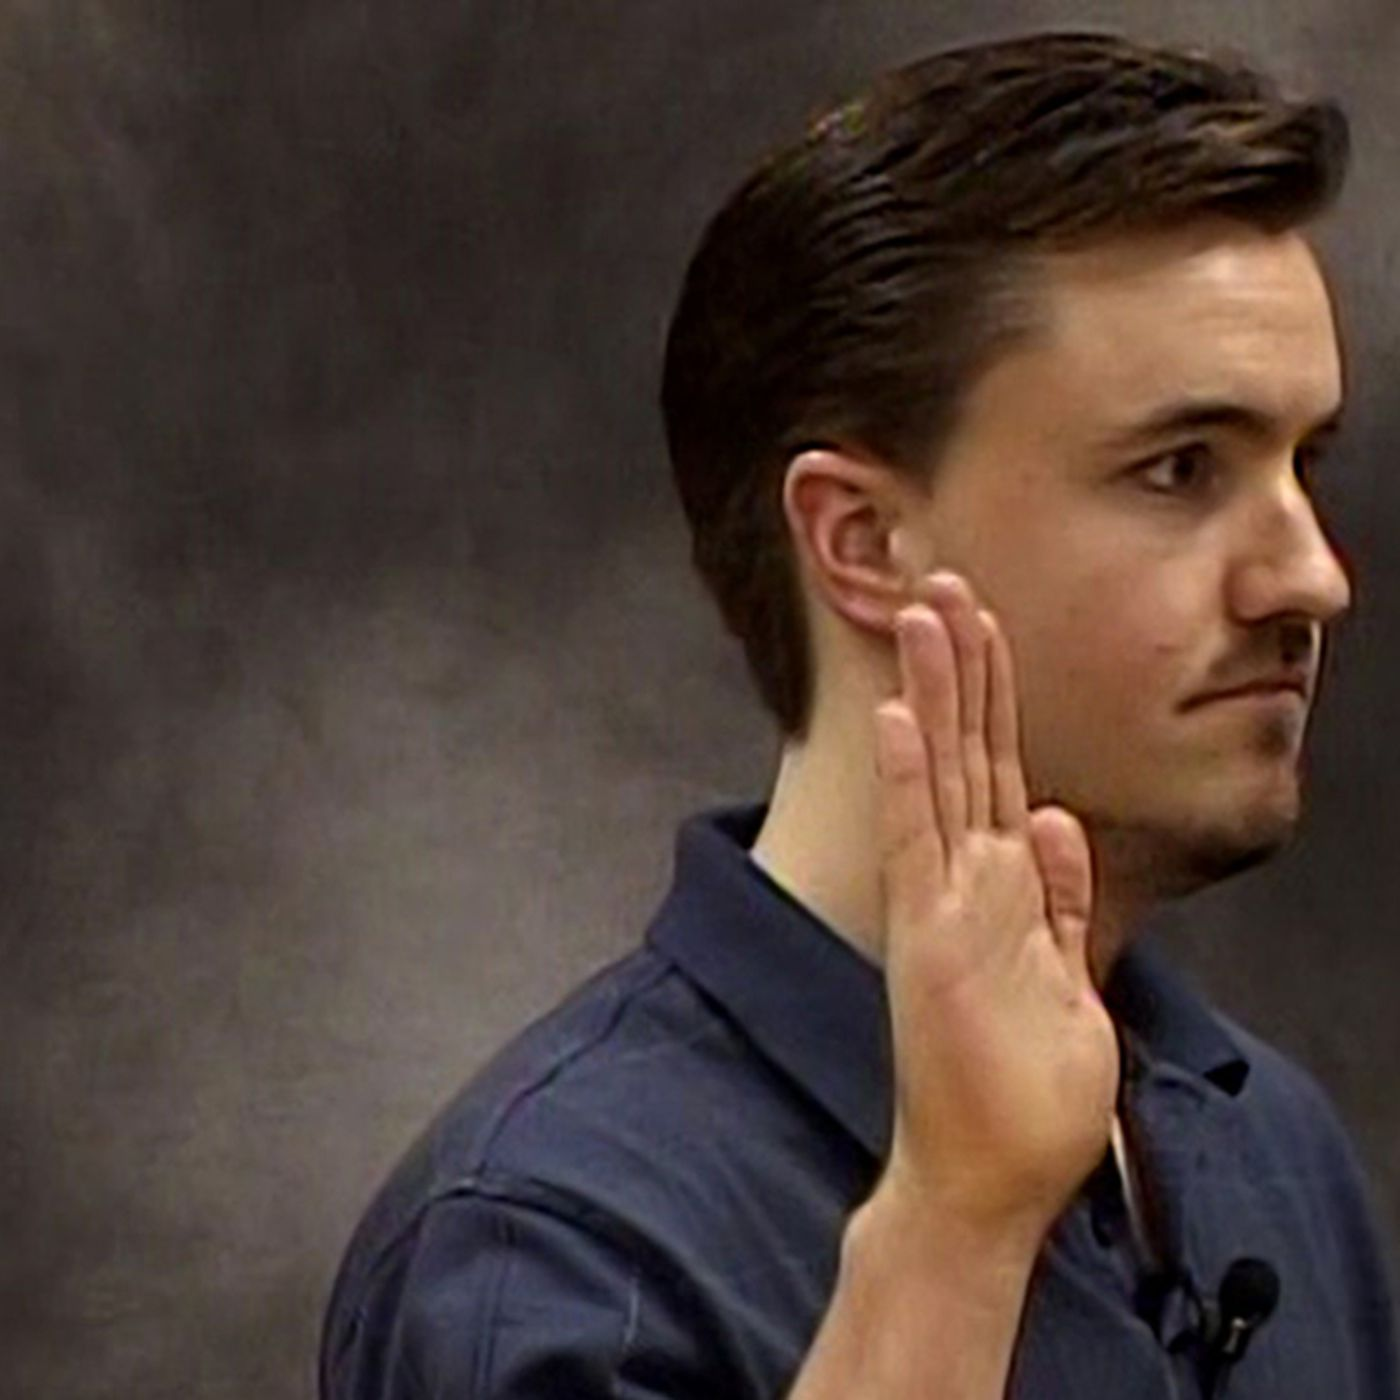 Cold Josh Powell S Brother Lied Under Oath Deseret News